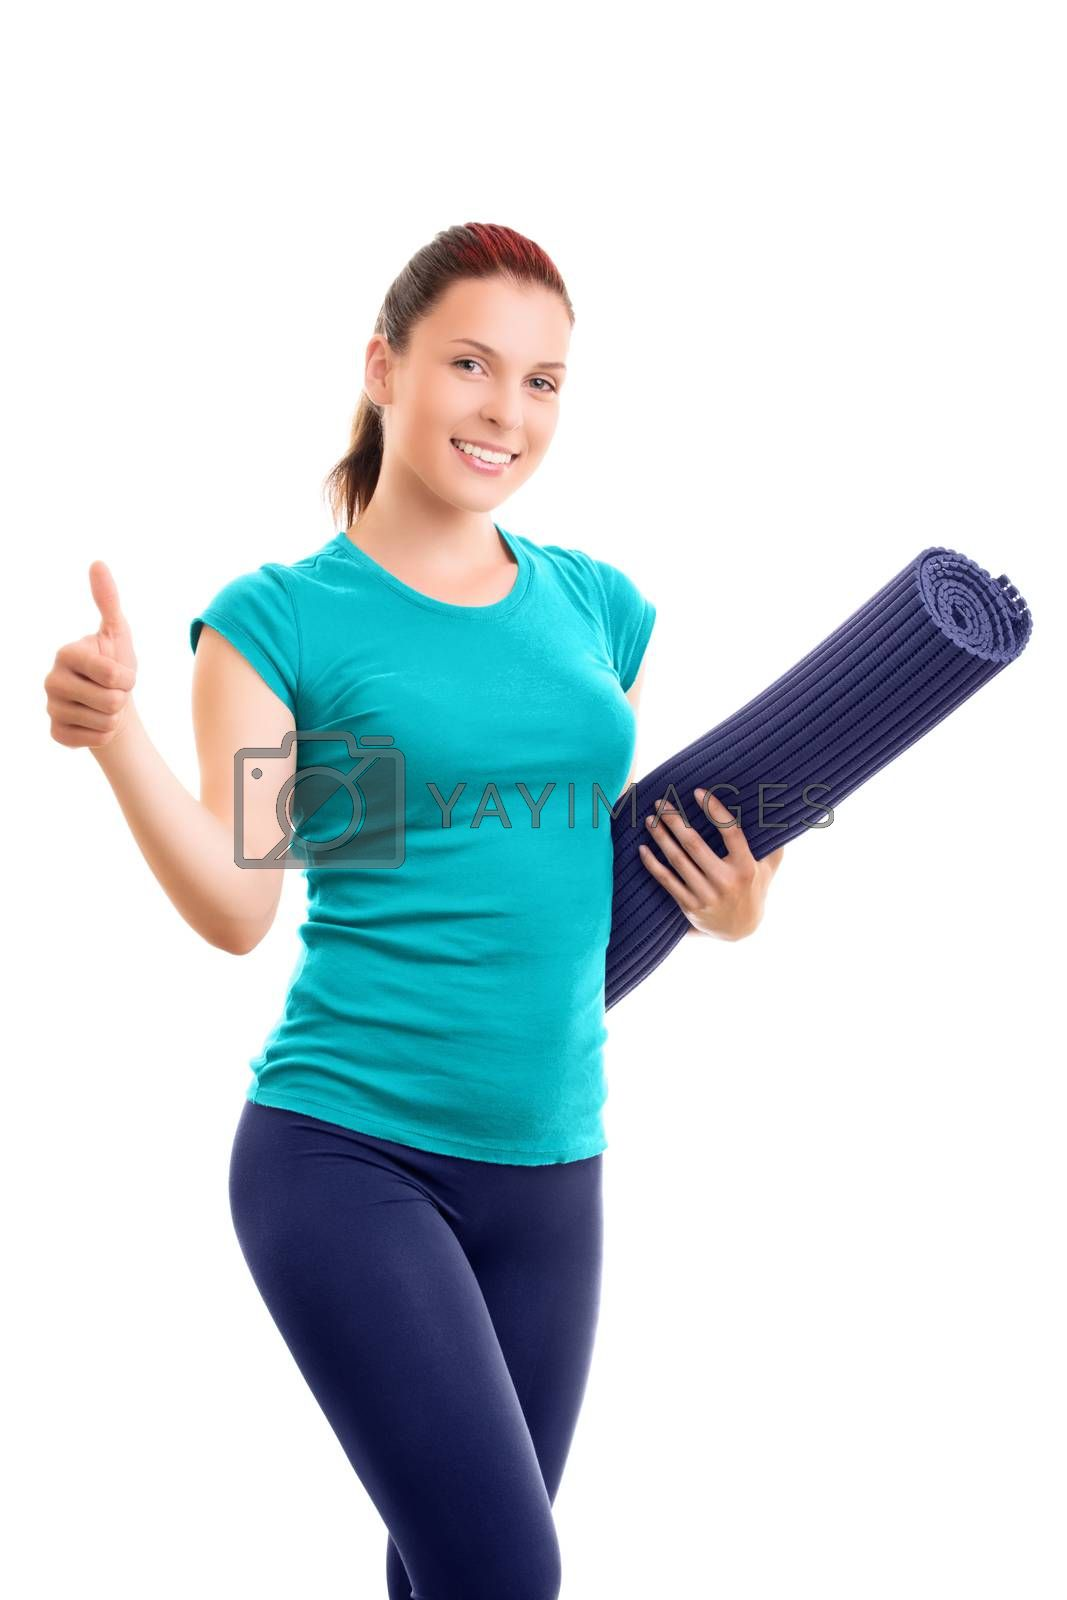 Beautiful smiling young girl in sportswear holding a yoga mat giving thumbs up, isolated on white background. Healthy lifestyle concept. Fitness and yoga concept.